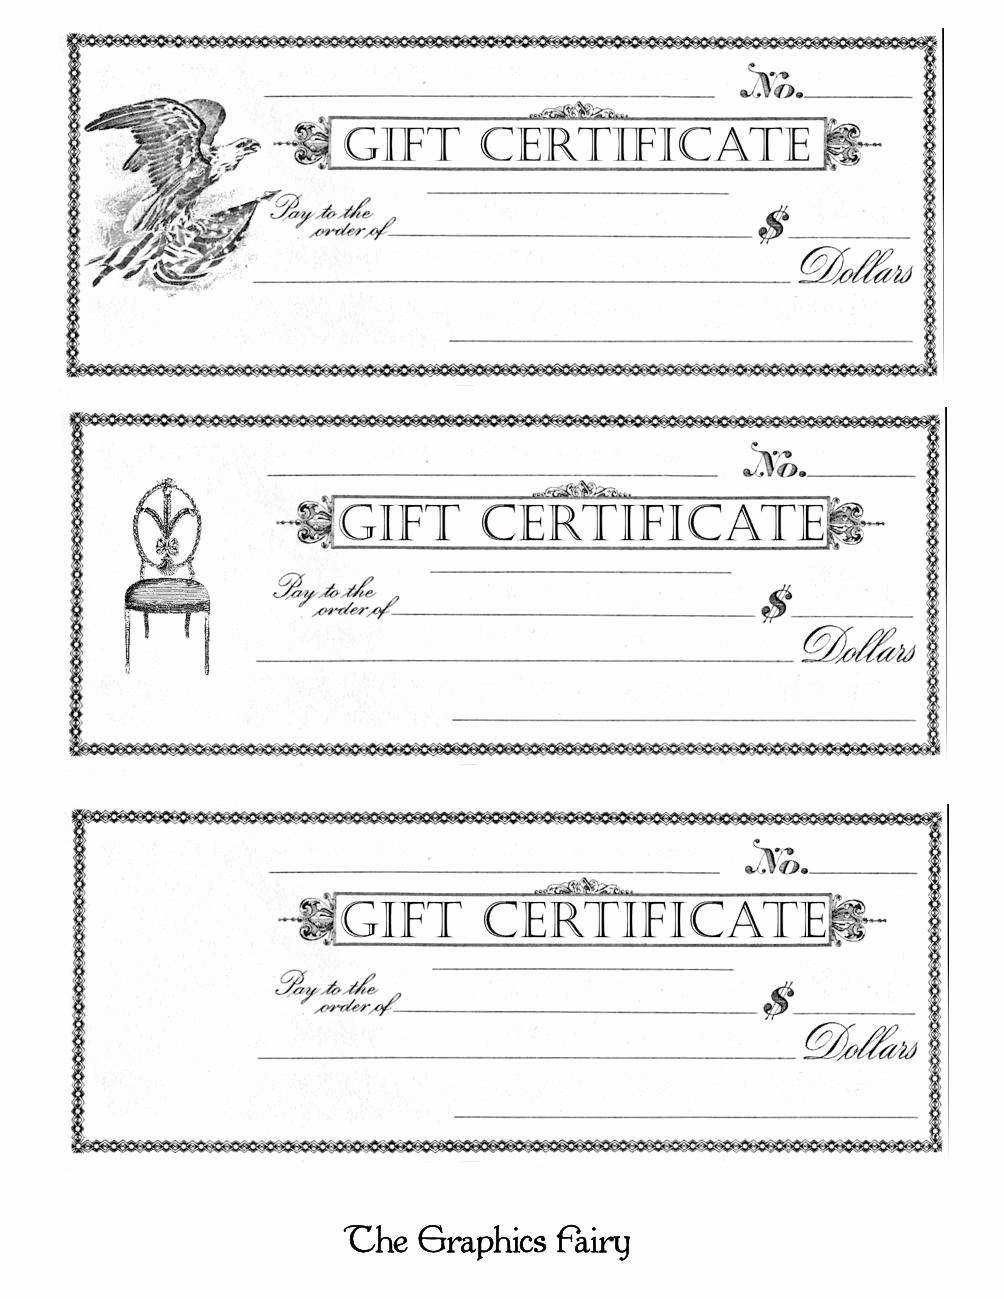 Free Gift Certificates to Print Fresh Free Printable Gift Certificates the Graphics Fairy